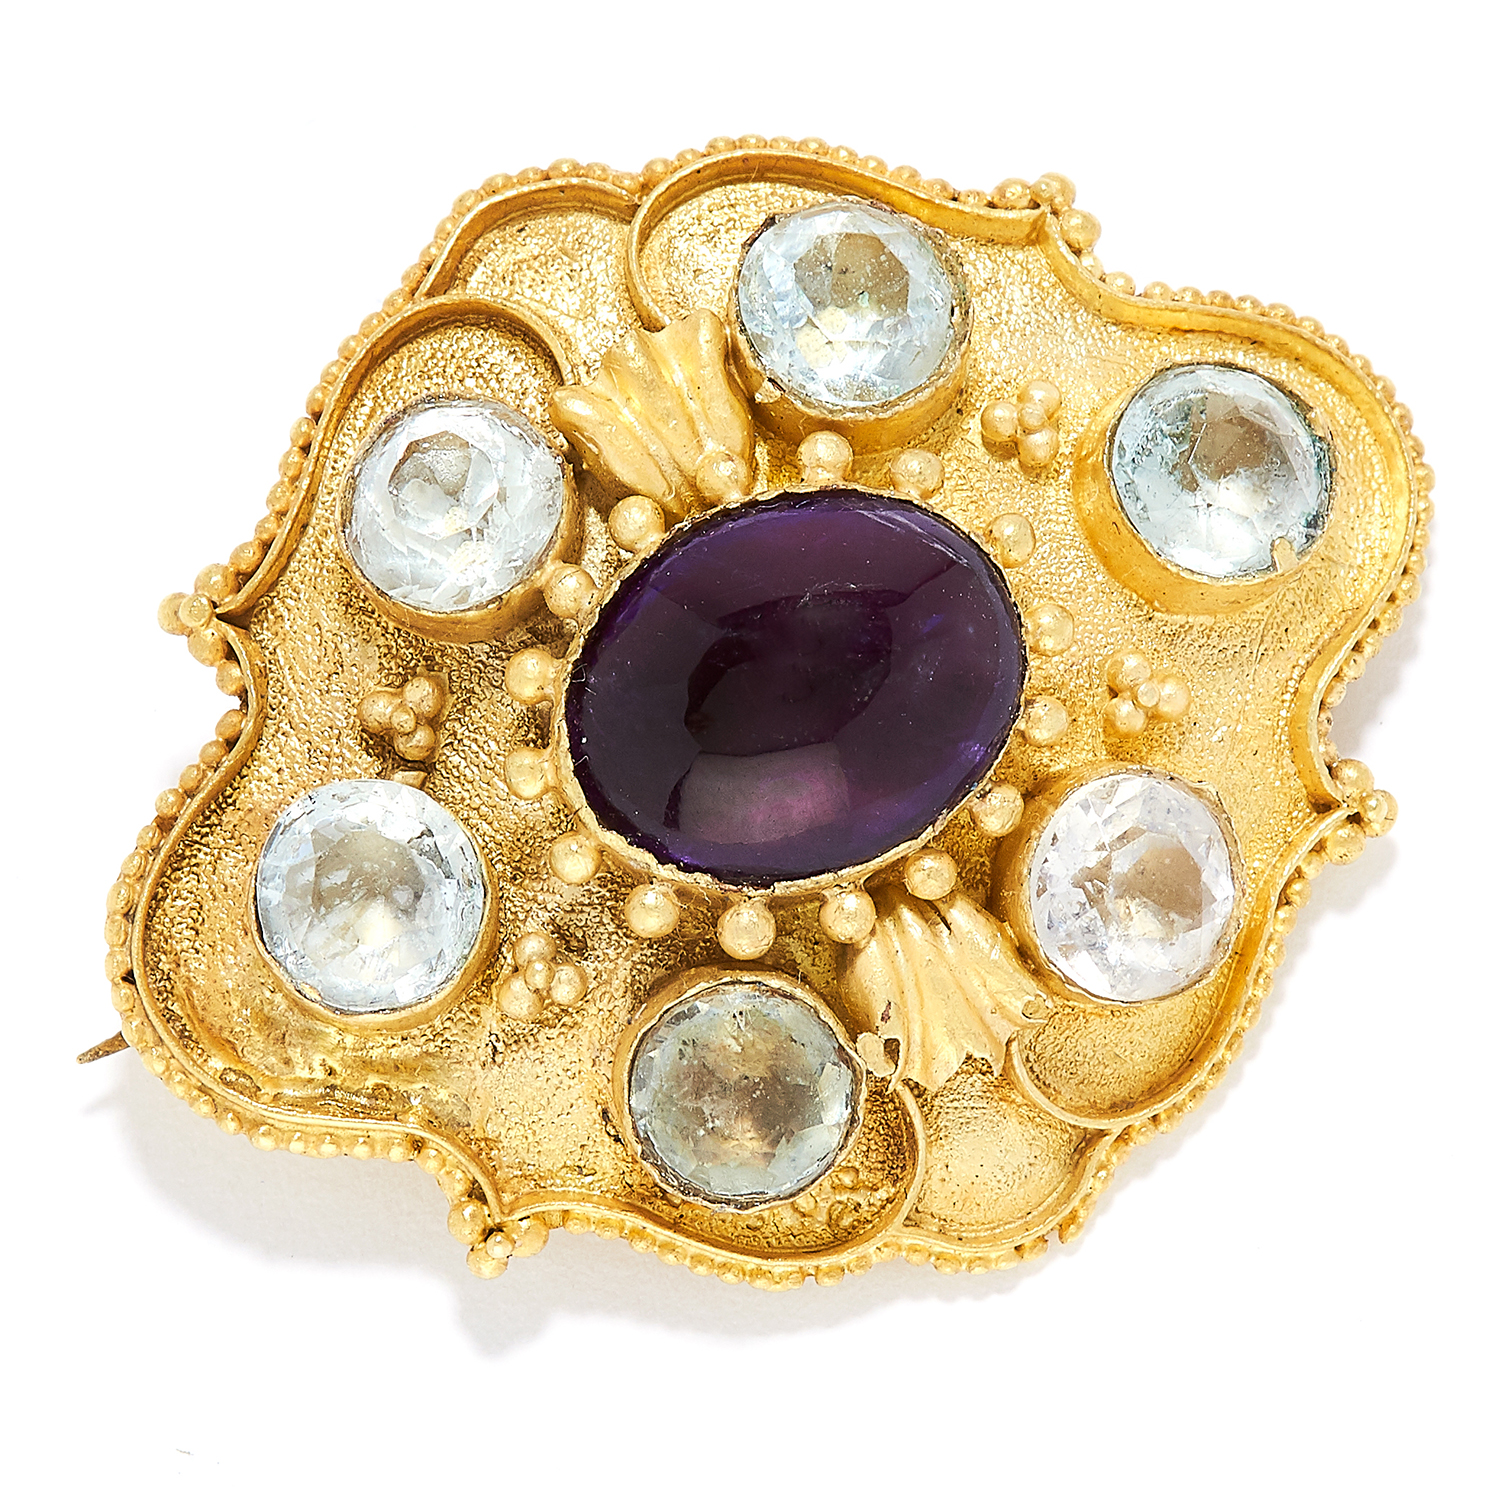 AMETHYST AND AQUAMARINE BROOCH in high carat yellow gold, set with a cabochon amethyst in a border